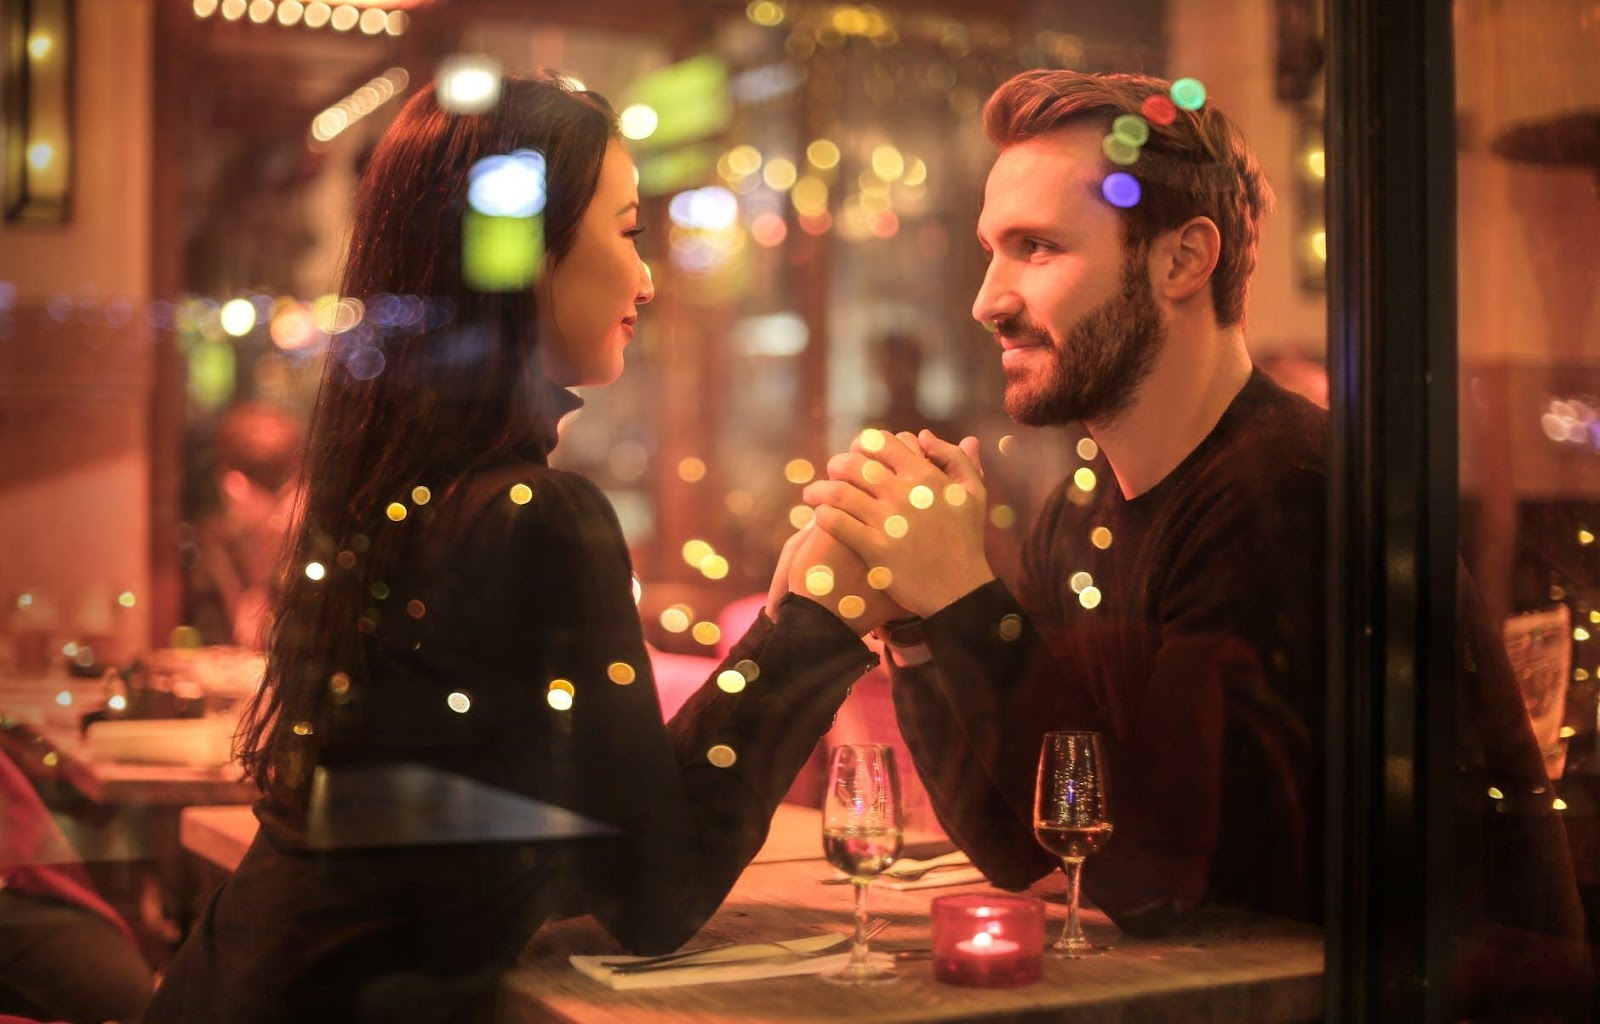 C:\Users\Cristhian\Documents\Escritura\Article Writing\Quality Guest Blogs\68155-0473UB - Eharmony and Match Are Still The Best Dating Sites to Find Marriage\pexels-photo-842546.jpeg